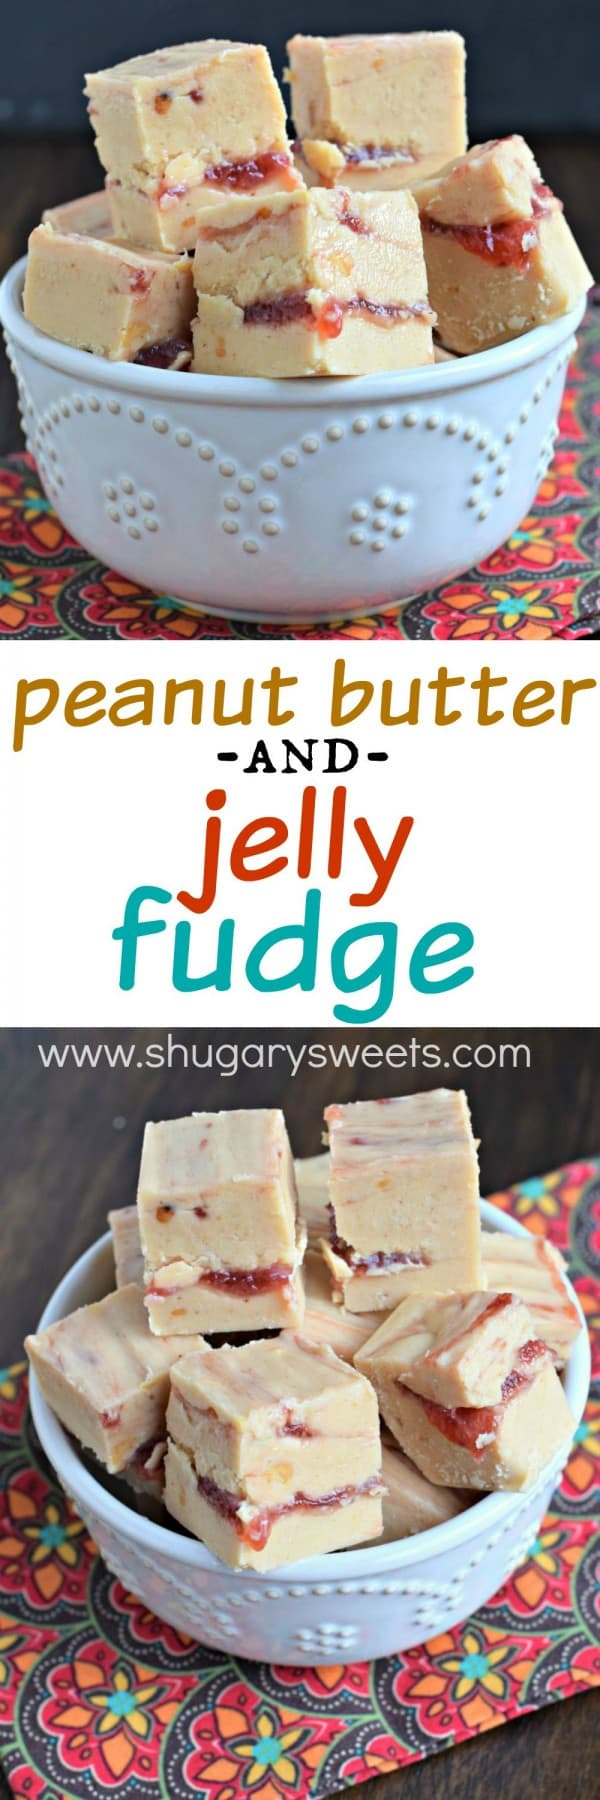 You're going to love this Peanut Butter and Jelly Fudge. Creamy peanut butter fudge (or crunchy if you use crunchy PB) with a thick swirl of jelly inside!